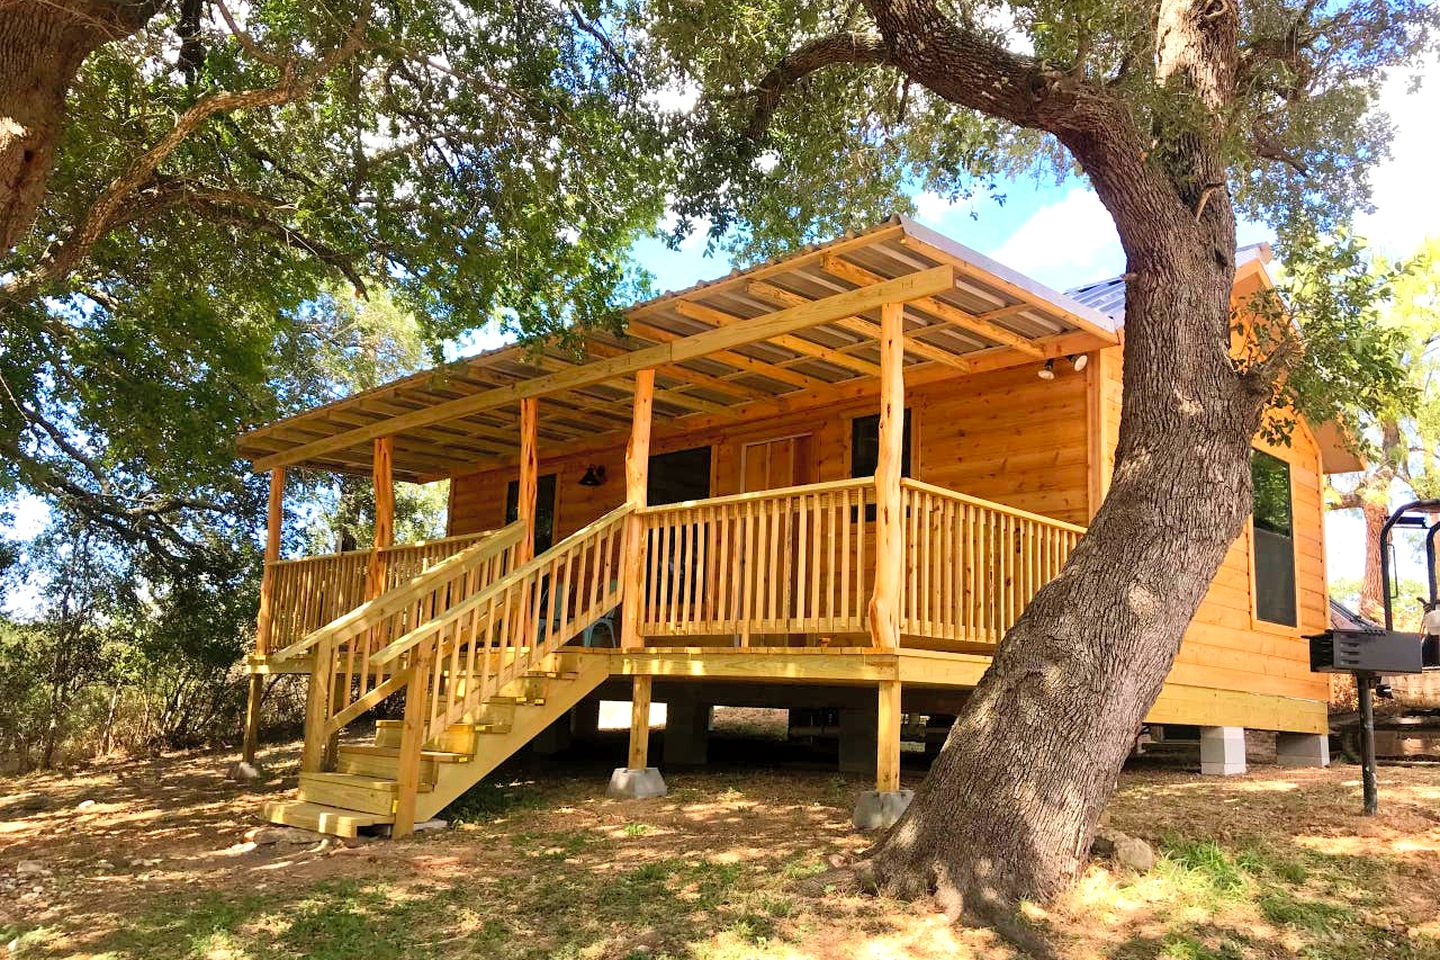 Texas Hill Country cabin rental that's perfect for weekend getaways from Austin